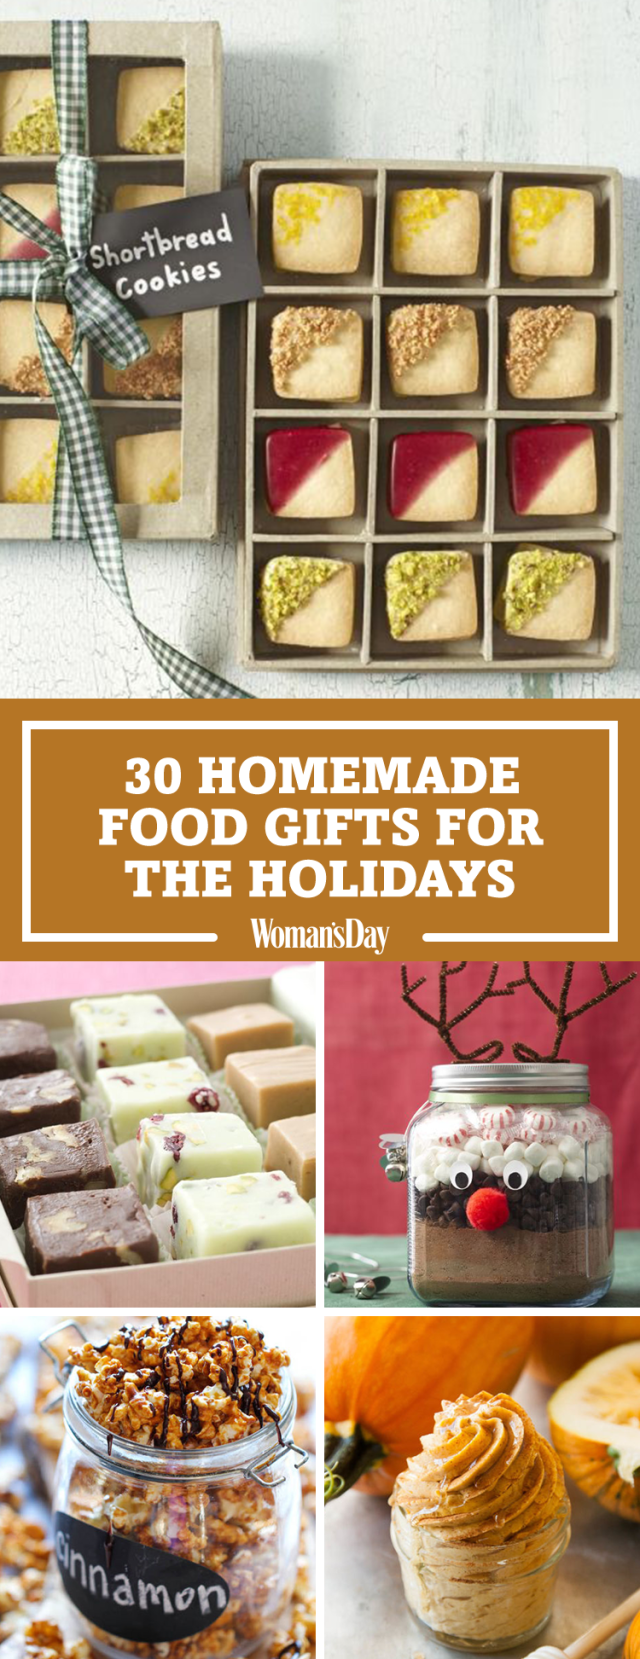 Ideas for diy christmas gifts for girlfriend